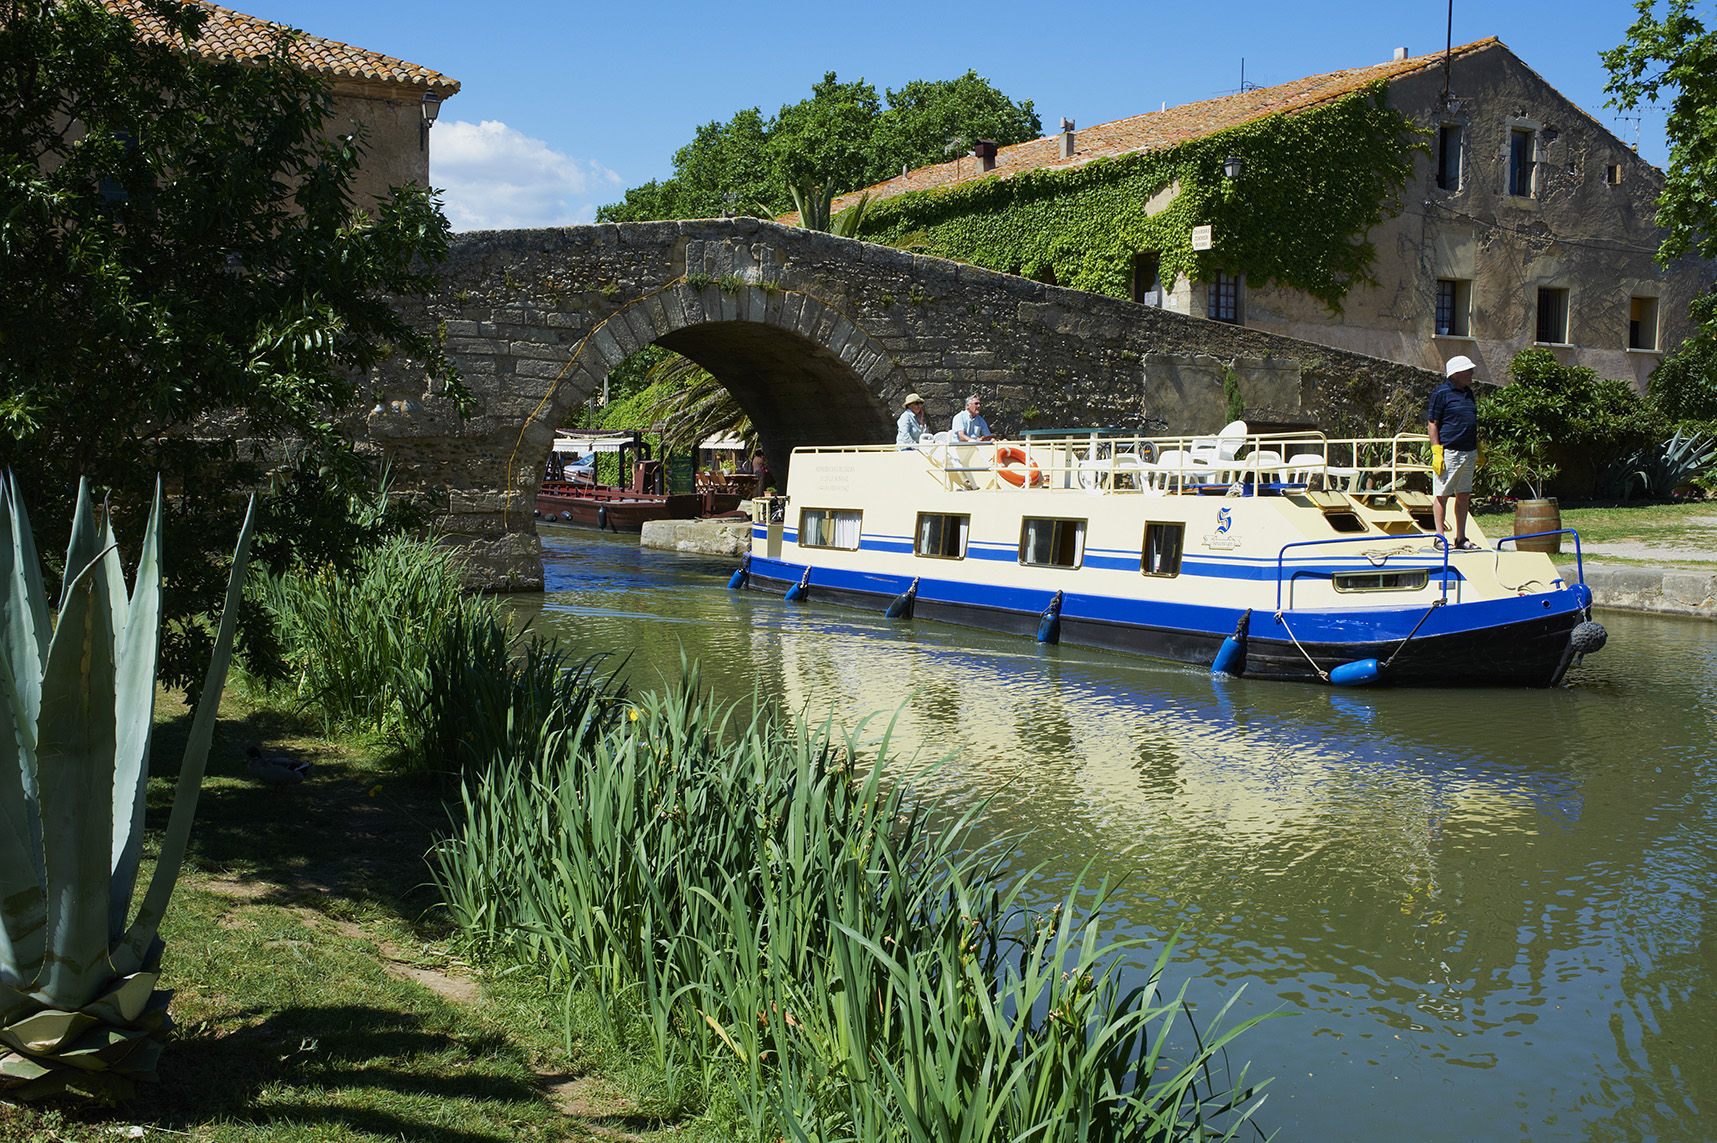 France, Languedoc-Roussillon, Aude (11), city of Le Somail, Canal du Midi, river harbour, Saint Marcel bridge